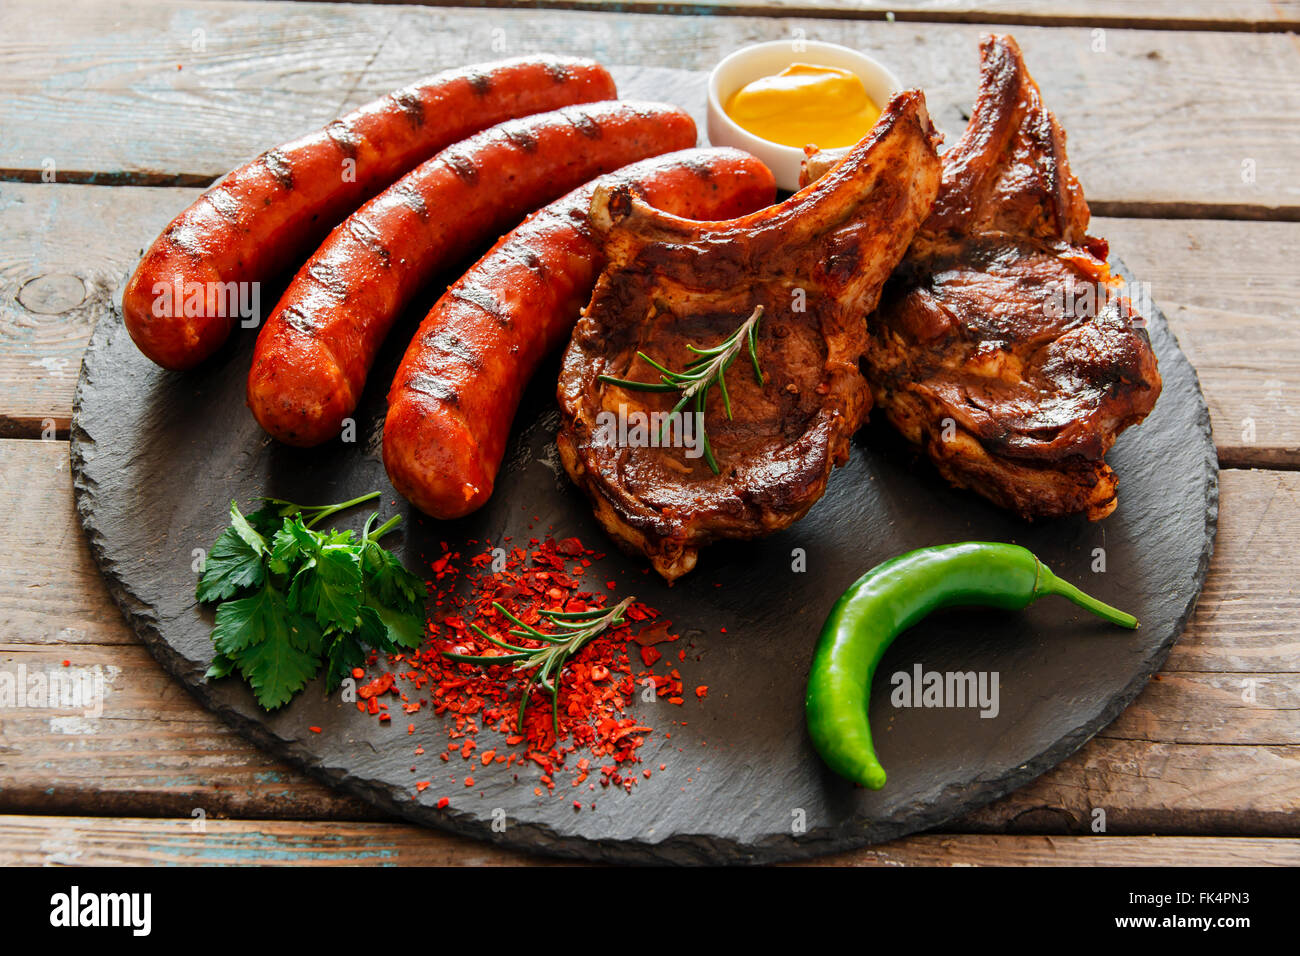 Grilled sausages and steak on the bone barbecue - Stock Image